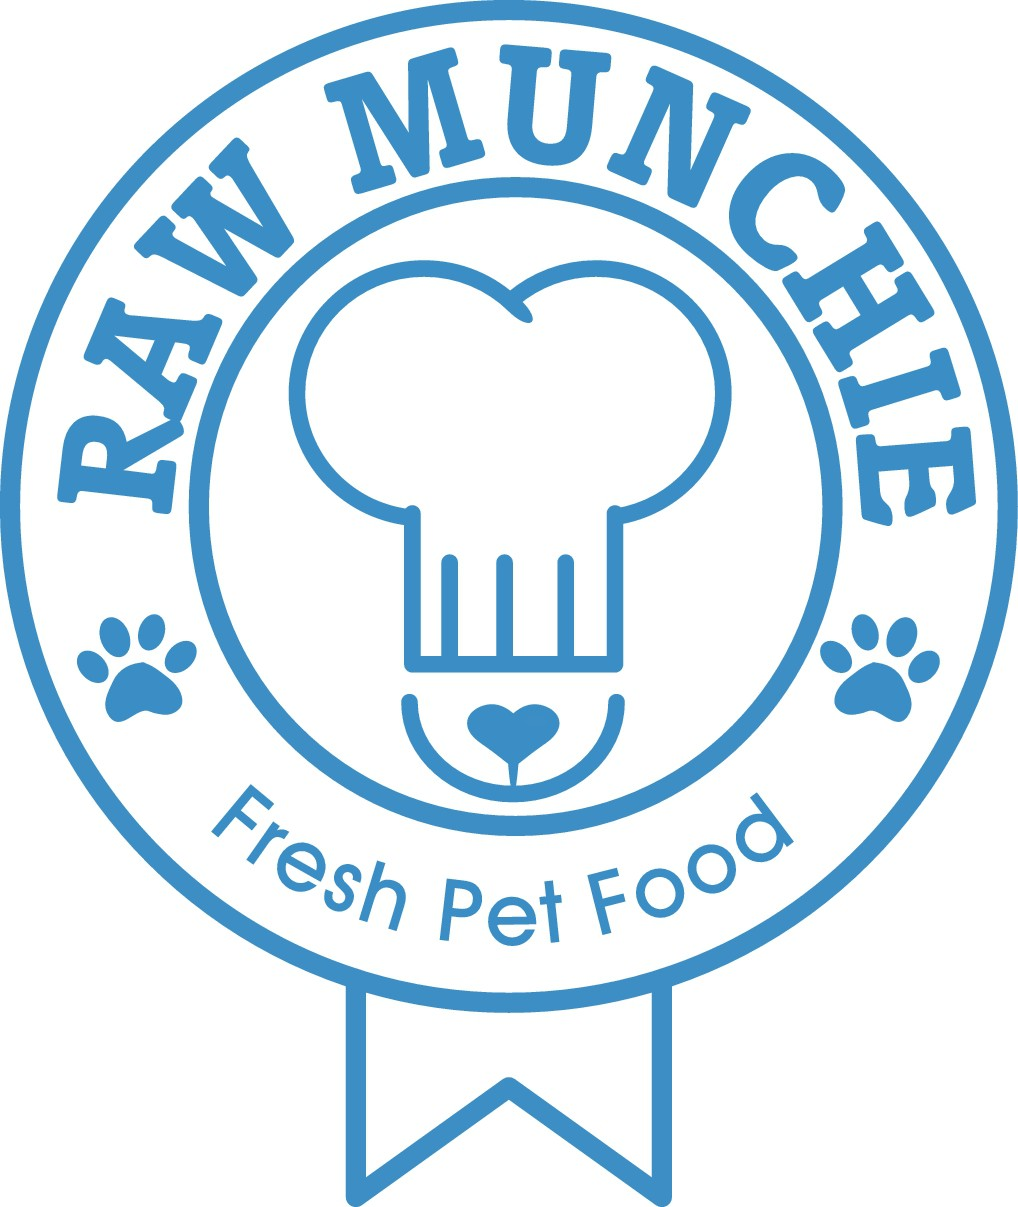 Fresh Pet Food Store for Dogs & Cats